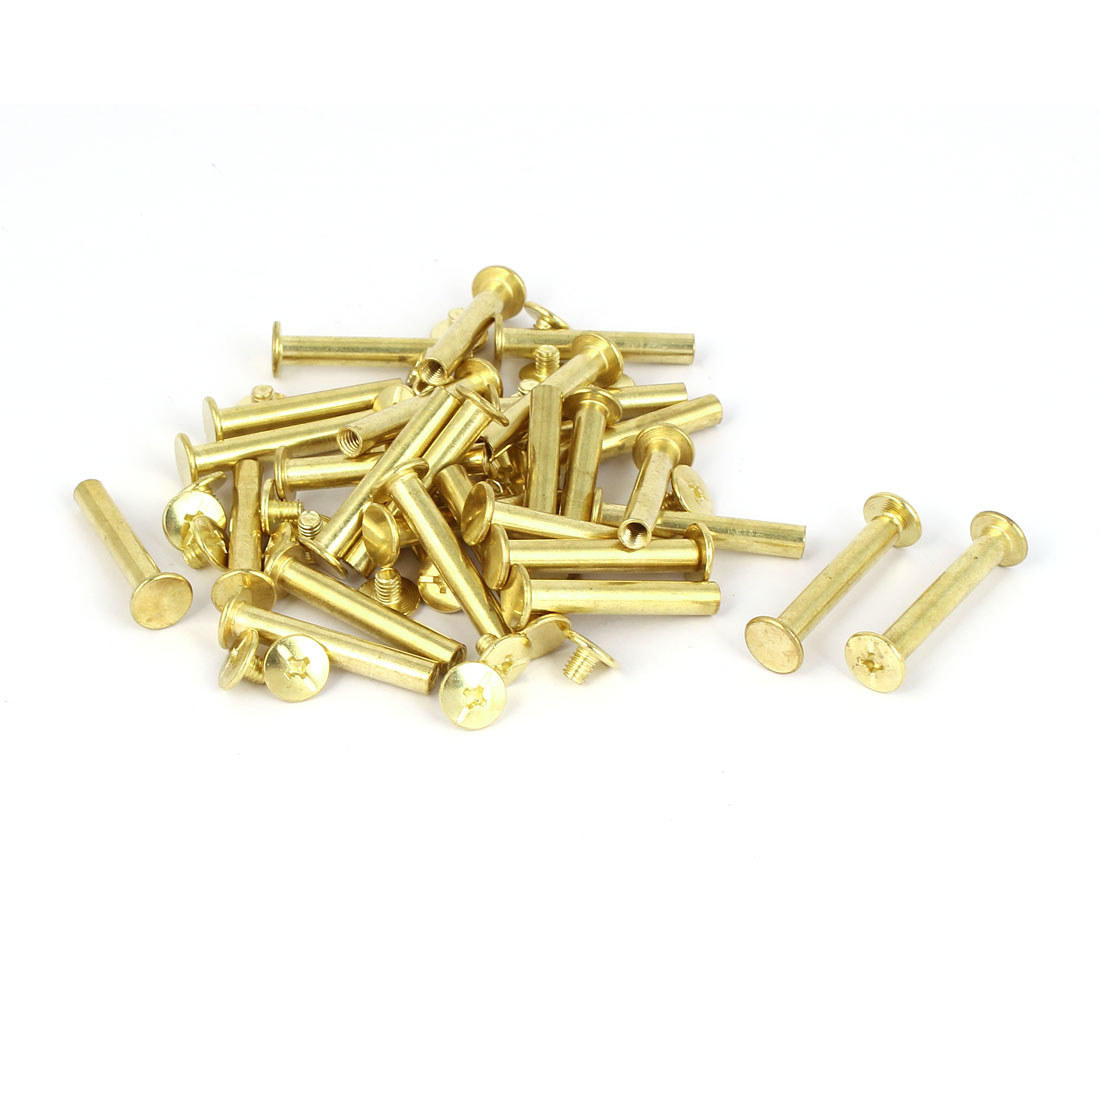 5mmx30mm Brass Plated Chicago Screws Binding Posts Docking Rivet 30pcs